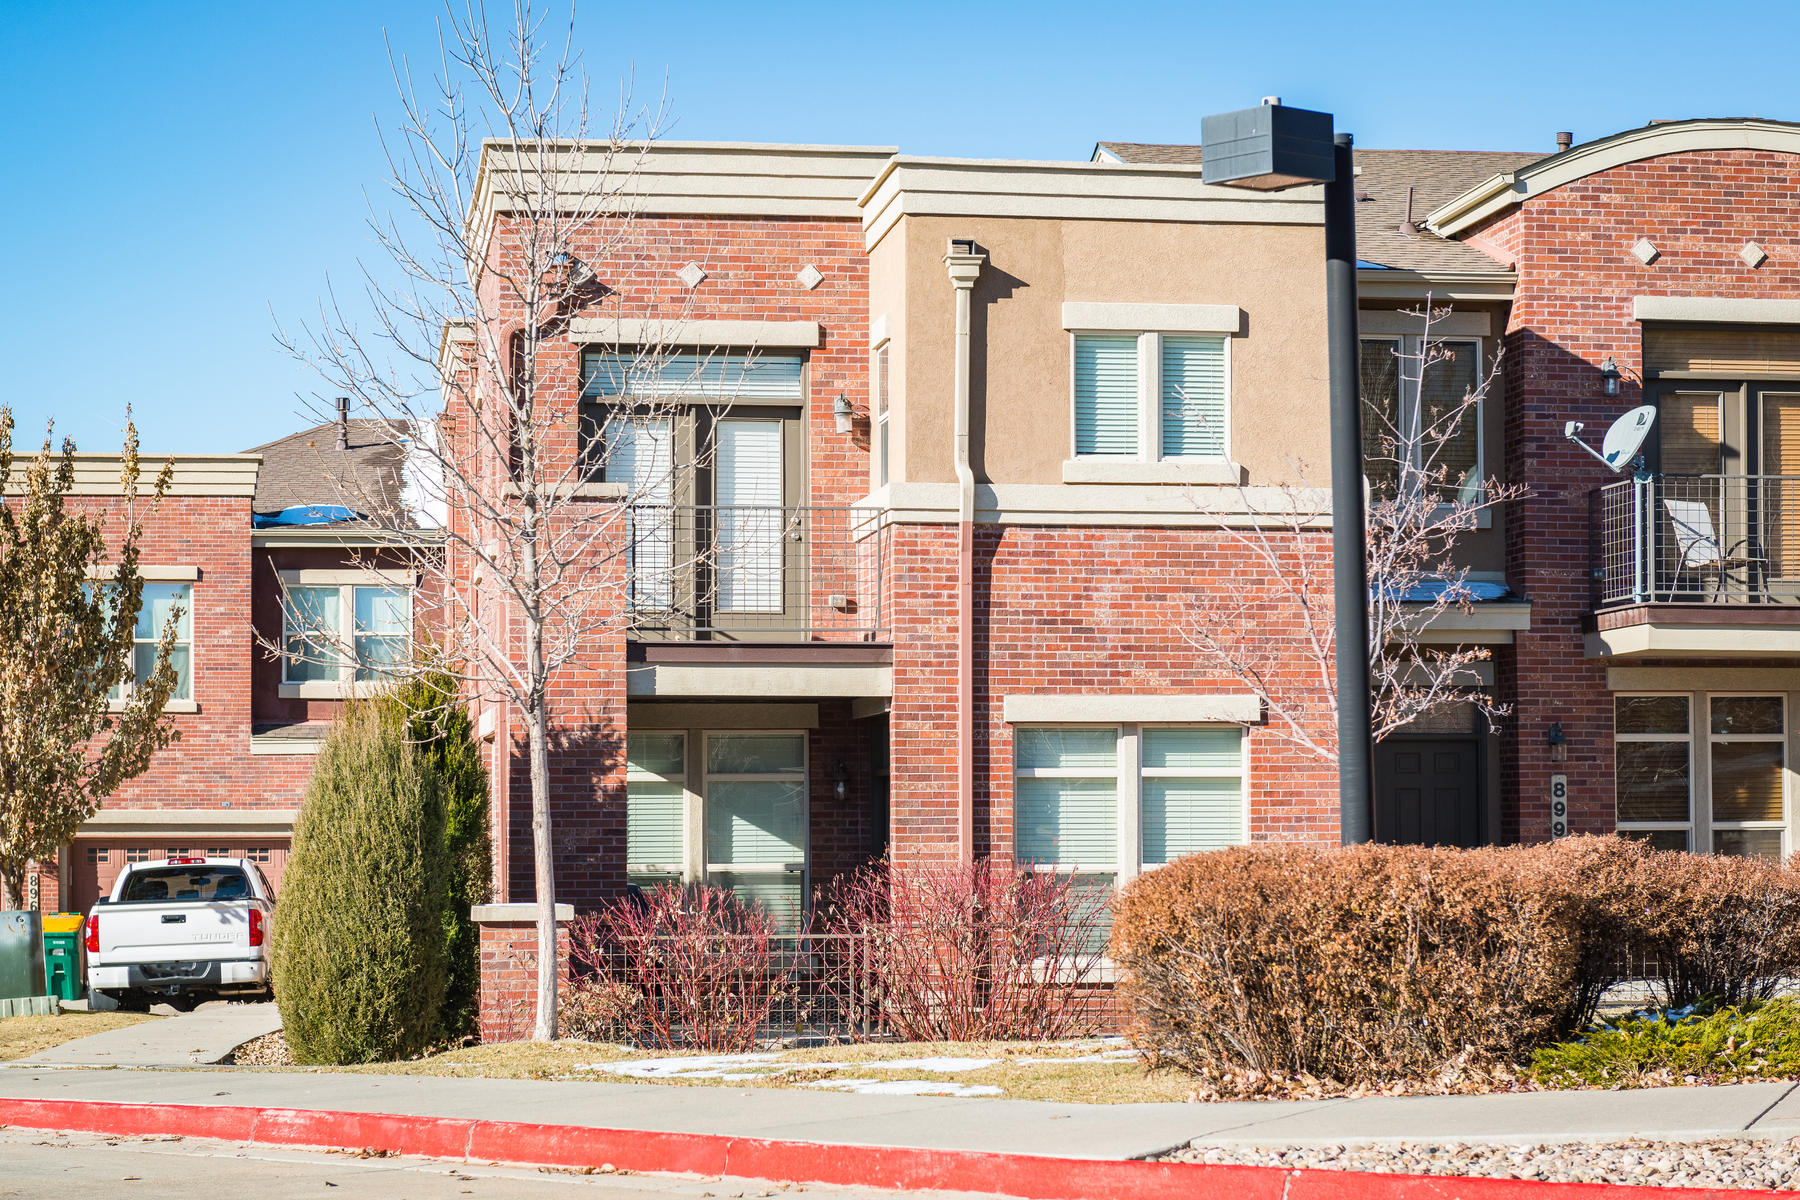 Single Family Home for Active at Great location in the Villas at Highland Park! 8993 E Nichols Place Bldg 6 Centennial, Colorado 80112 United States